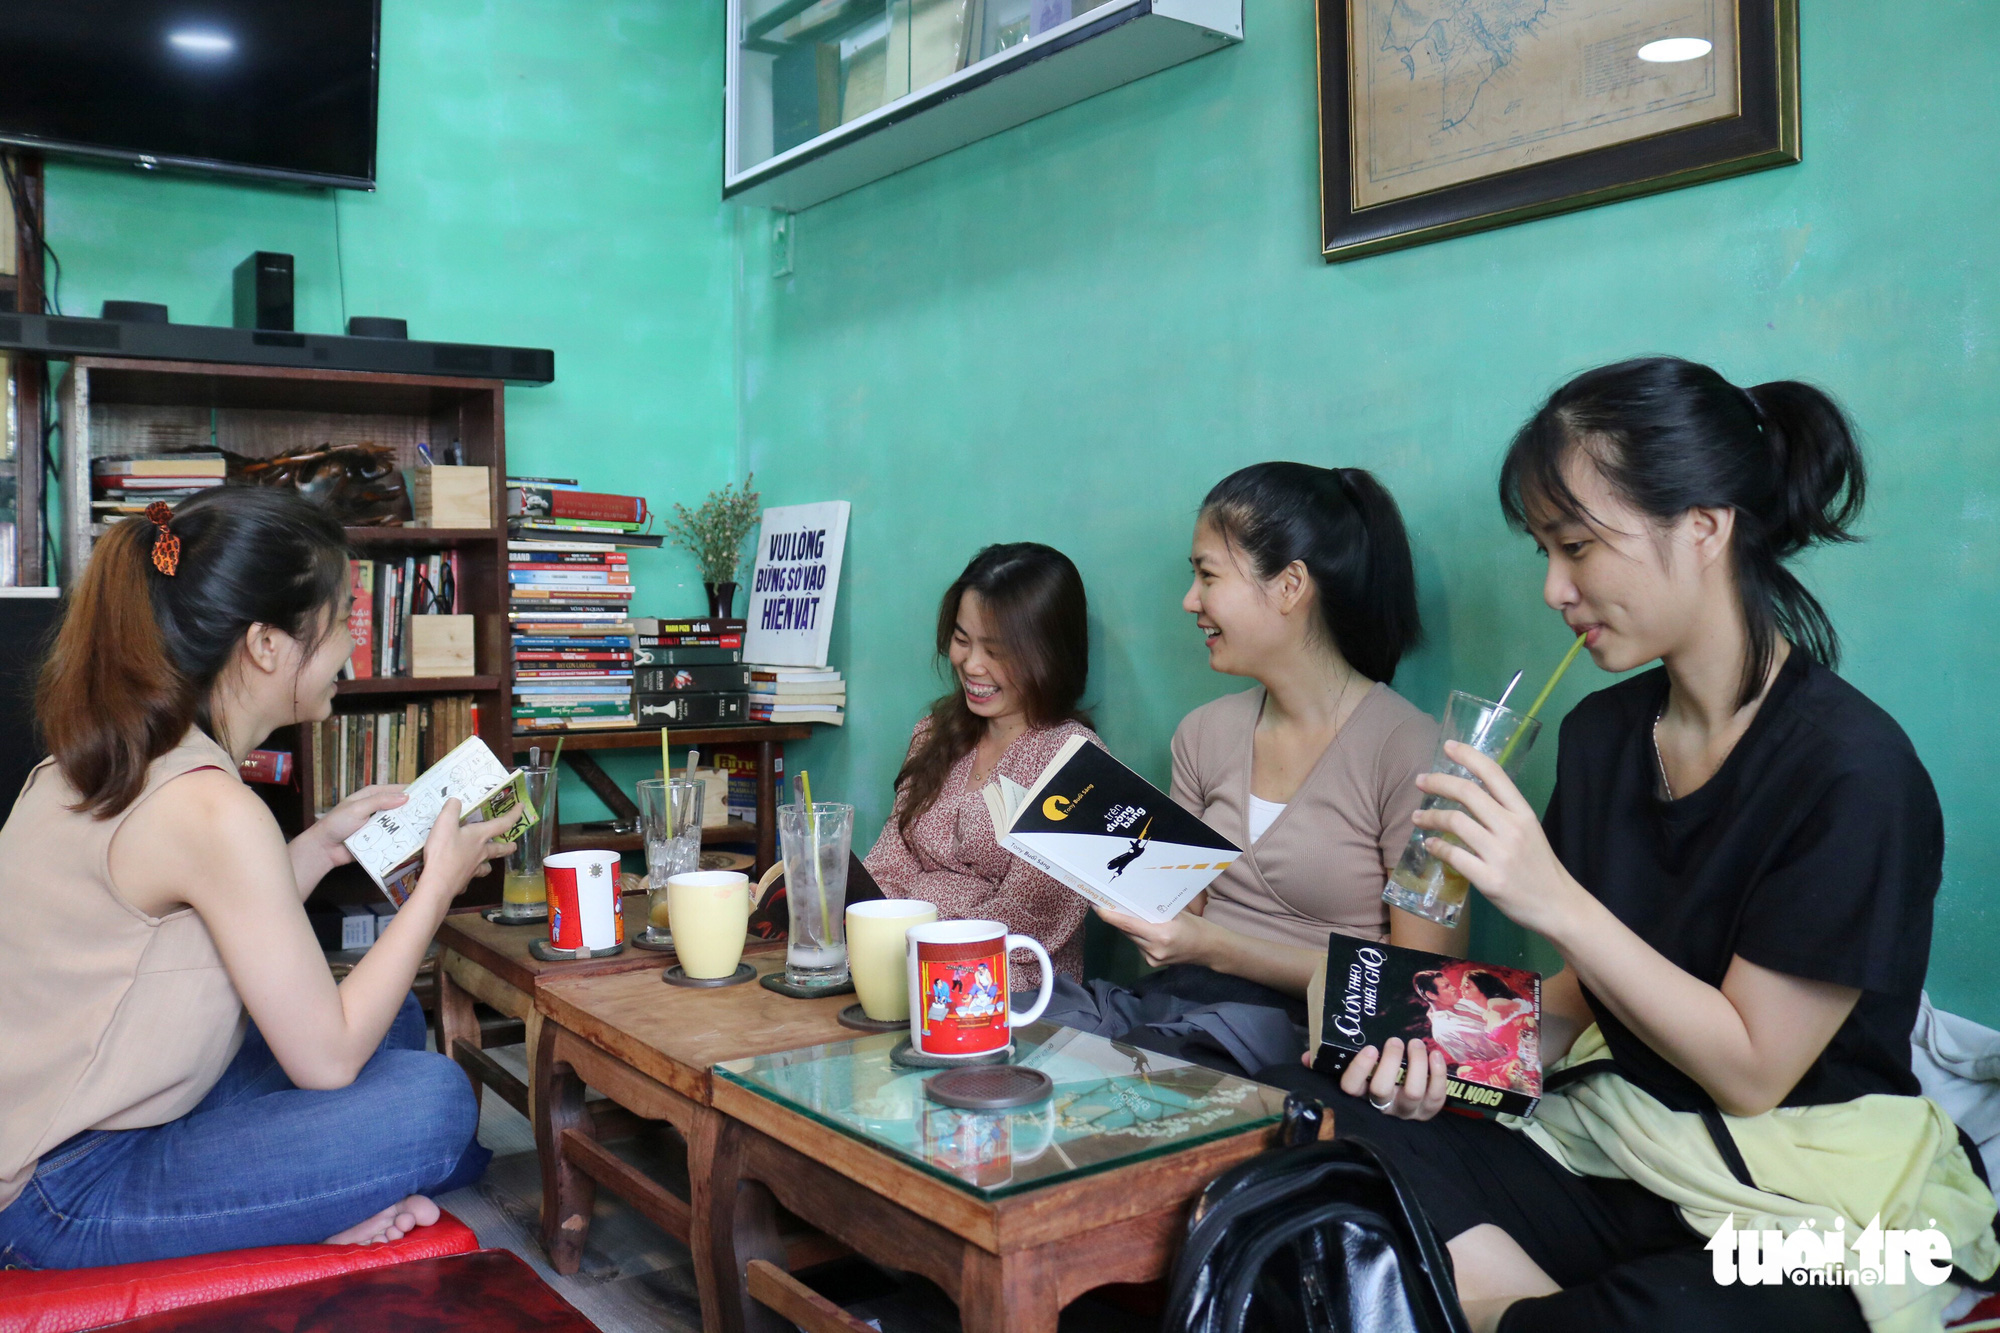 Nguyen Thi Phan and friends spend their weekend reading at the bookstore-café on Nguyen Khac Nhu Street in Ho Chi Minh City, Vietnam. Photo: Ngoc Phuong / Tuoi Tre